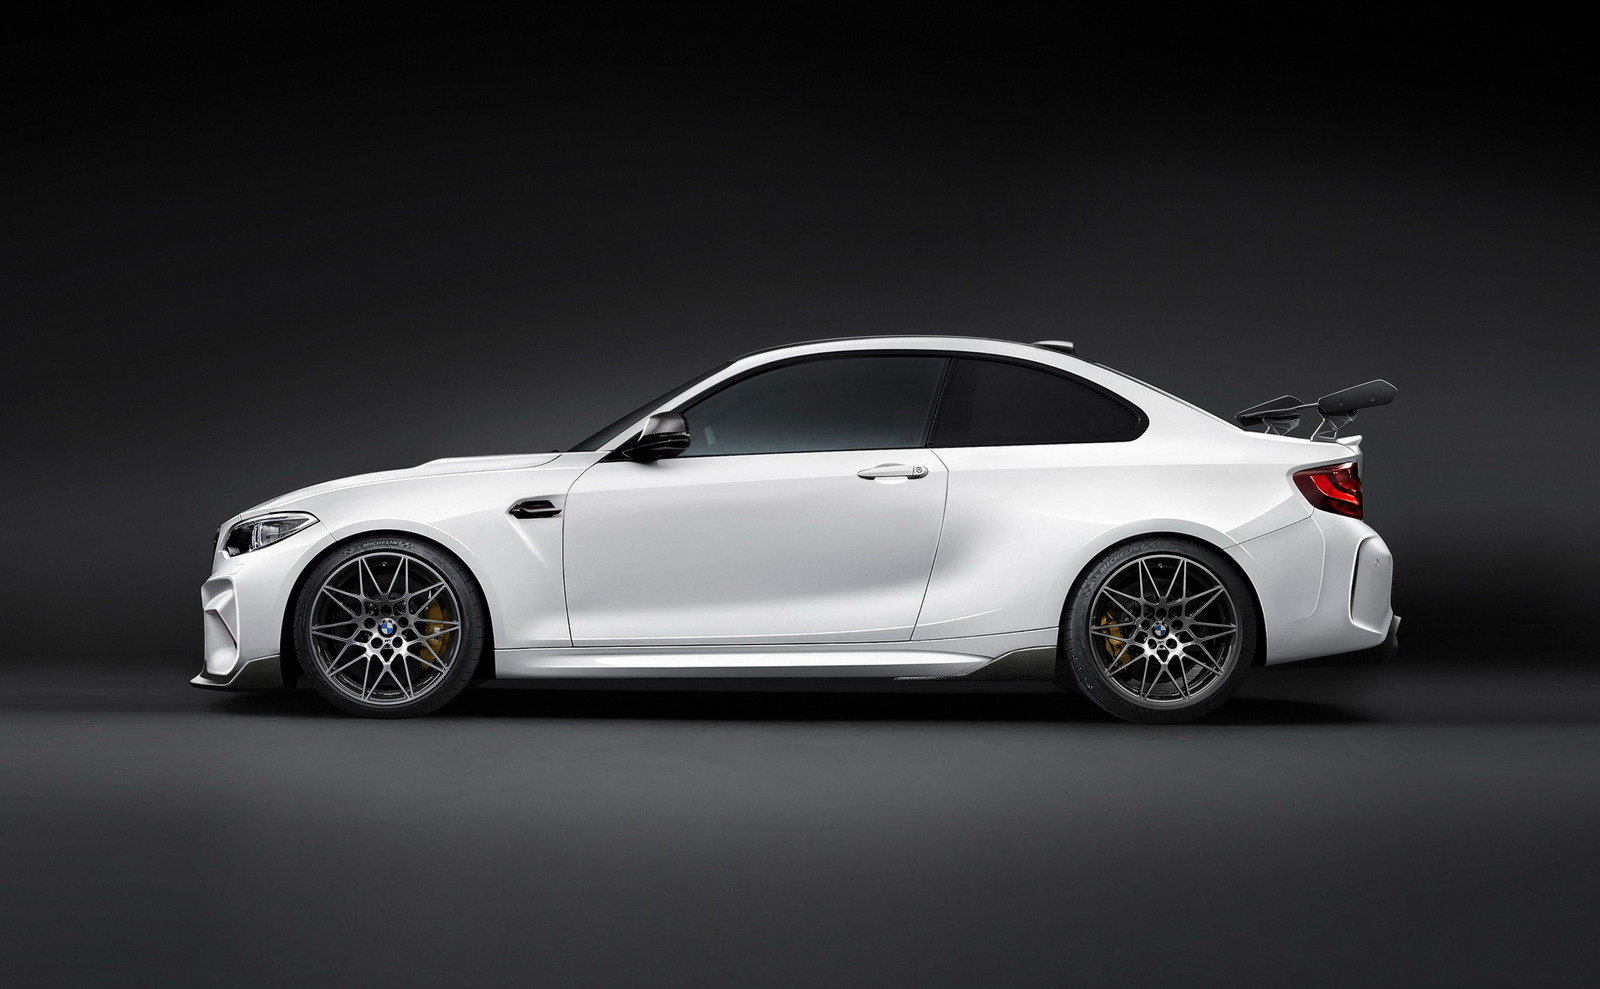 bmw-m2-gts-by-alpha-5%2B%25281%2529.jpg